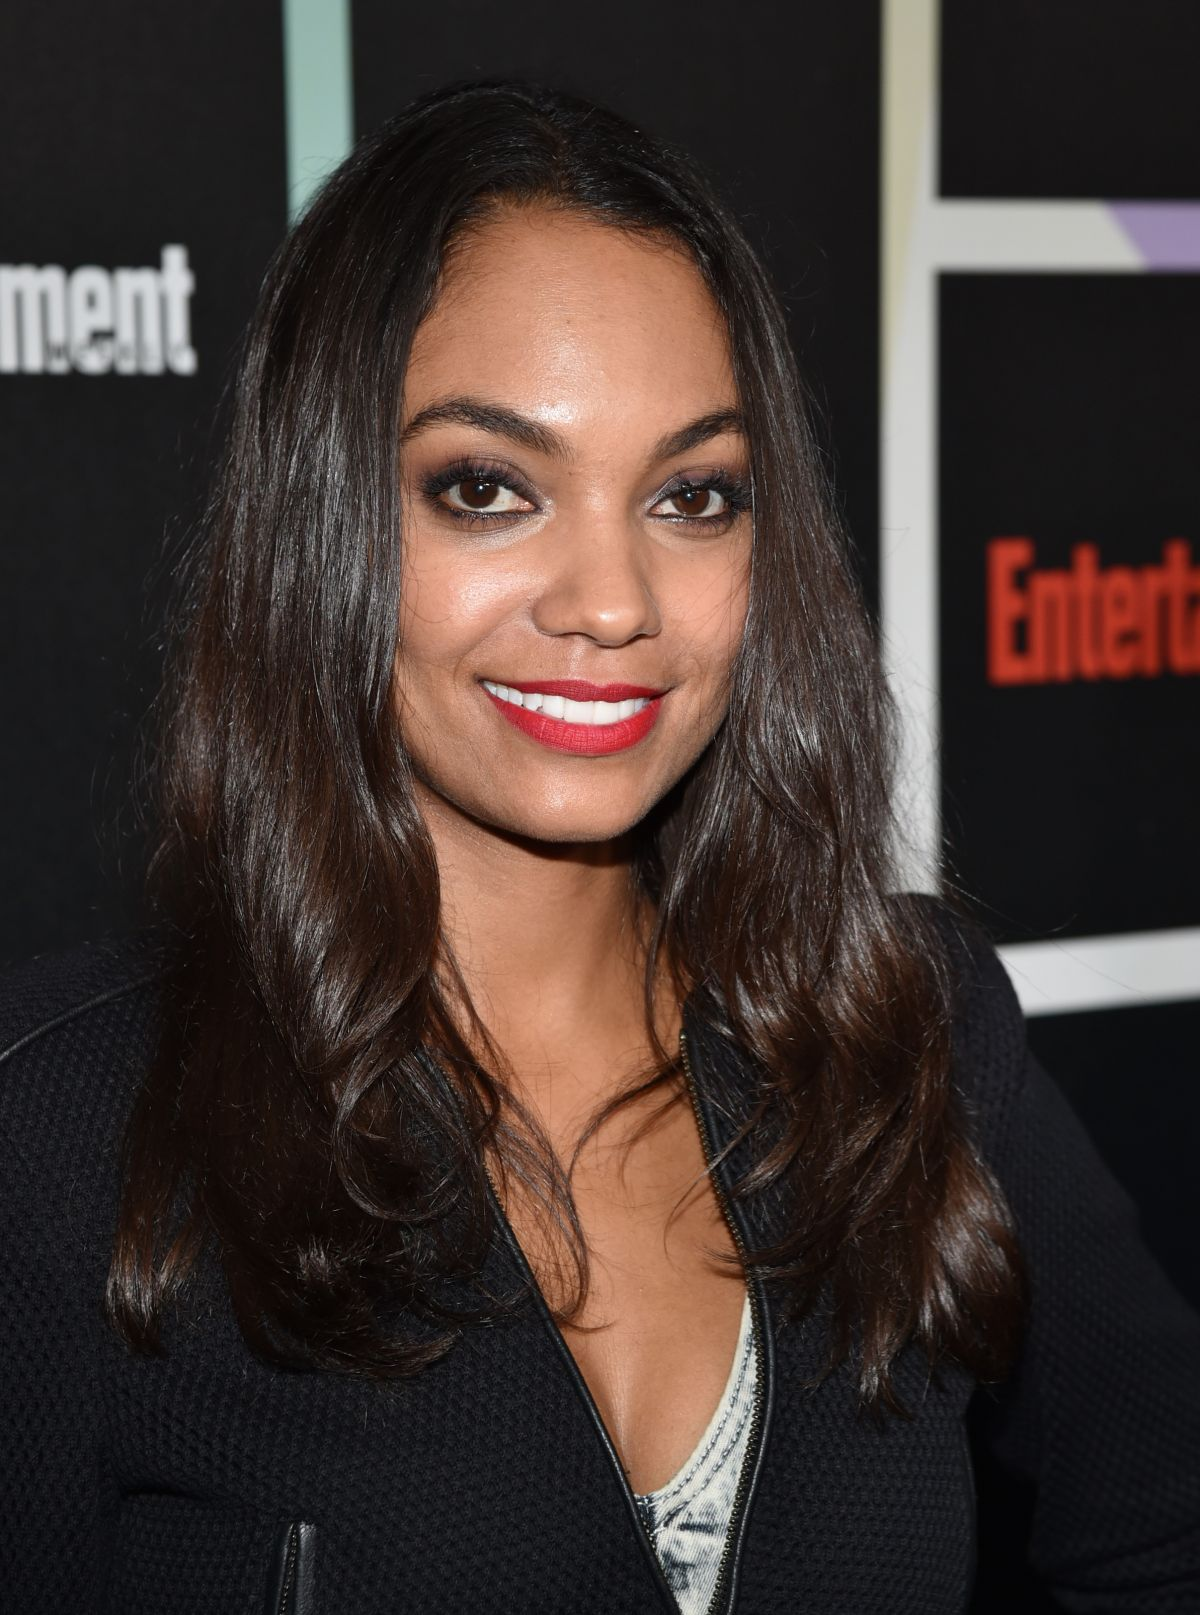 LYNDIE GREENWOOD at Entertainment Weekly's Comic-con Celebration